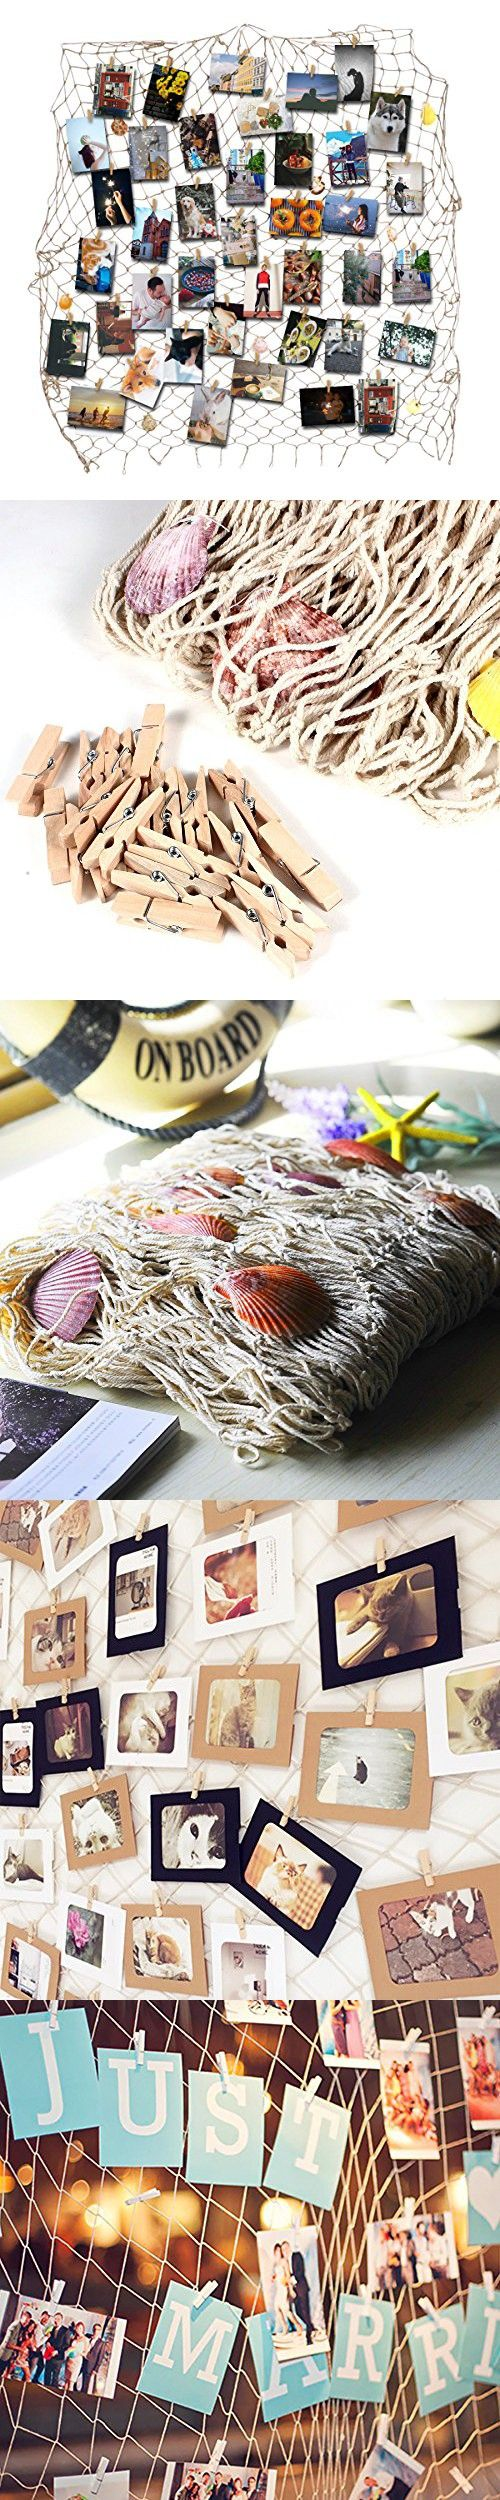 HAYATA Home Decoration Nautical Decorative Fishing Net Multi Picture Frames Collage Photo Hanging Display Wall Decor Party Decoration